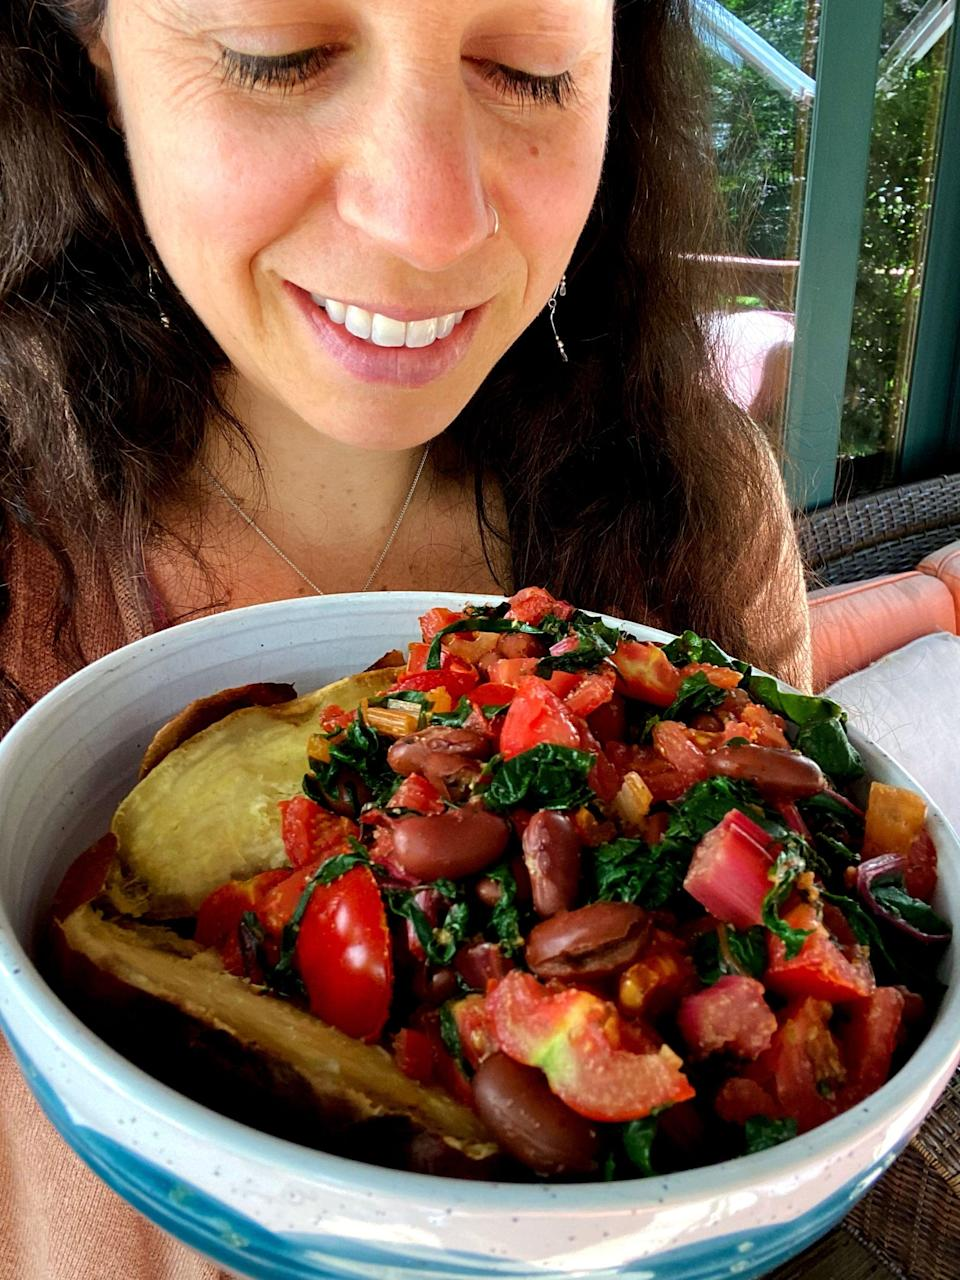 """<p>After eating sweet potatoes every day for a month, I ended up looking leaner, especially in my face, arms, upper back, and waist - another bonus I wasn't expecting! I honestly thought I'd gain weight because so many experts say to cut carbs if you're trying to lose weight. I was eating way more, but as Langevin explained, it was the """"right"""" carbs because they were <a href=""""https://www.popsugar.com/fitness/What-Complex-Carbs-35686730"""" class=""""link rapid-noclick-resp"""" rel=""""nofollow noopener"""" target=""""_blank"""" data-ylk=""""slk:complex carbs"""">complex carbs</a>. </p> <p>Eating sweet potatoes was so satiating, as I mentioned, and it helped cut down on my sugar cravings, so I was definitely eating less baked goods, chocolate, and bread. I honestly wasn't into them as much, because if I was, I would have eaten them since, thanks to intuitive eating, I don't restrict any foods I truly want.</p>"""